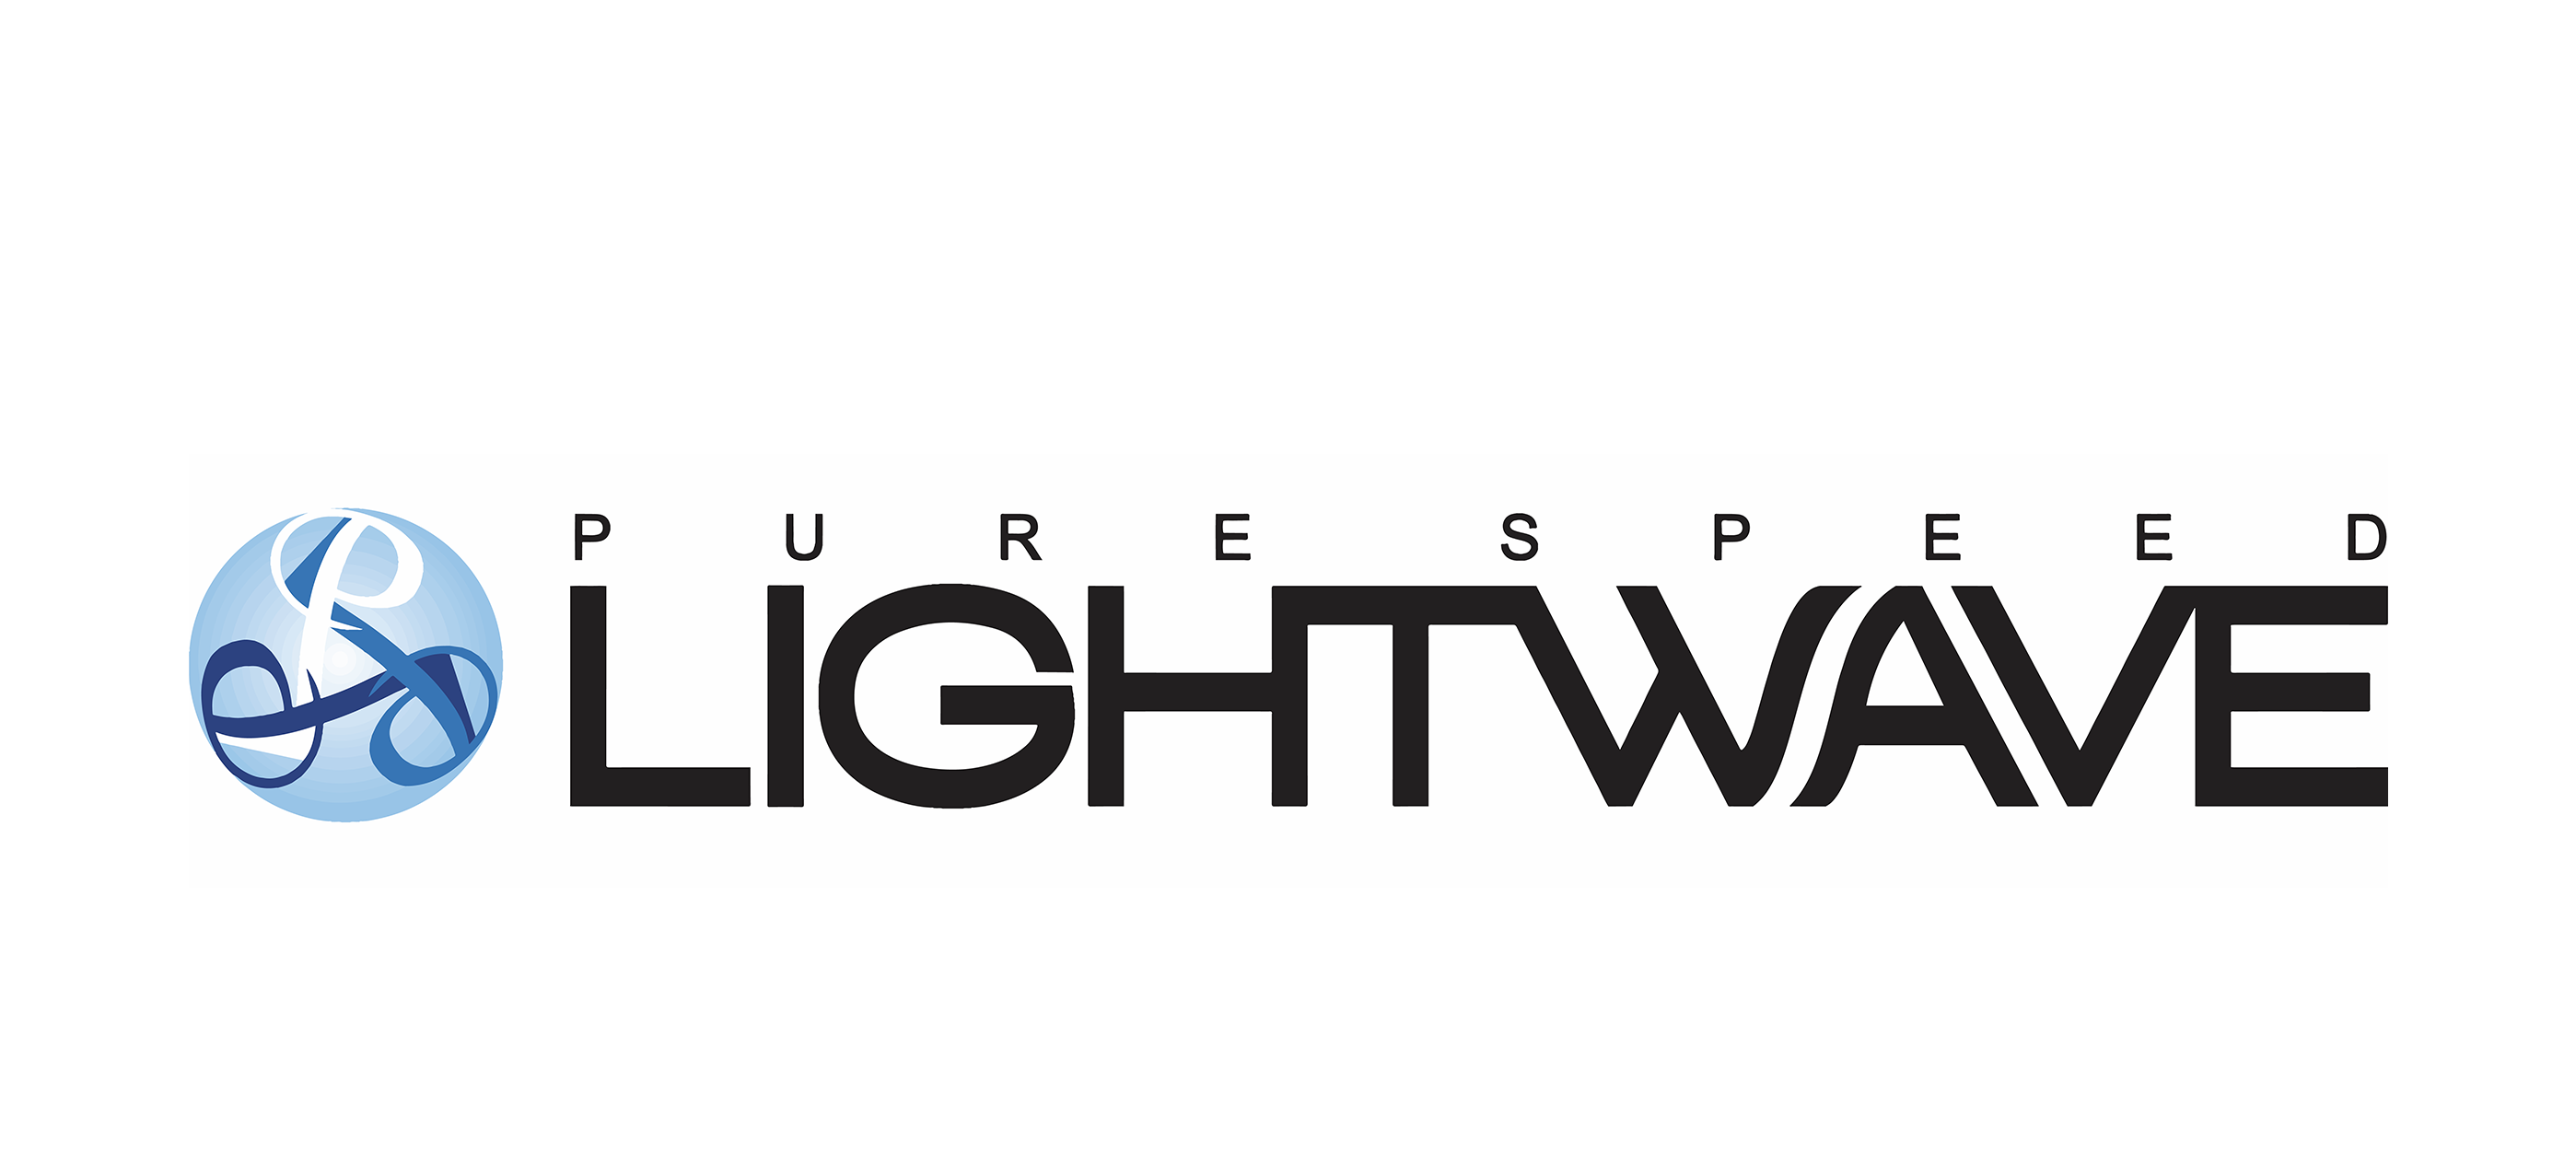 PS Lightwave - Resource Page - Cover Image